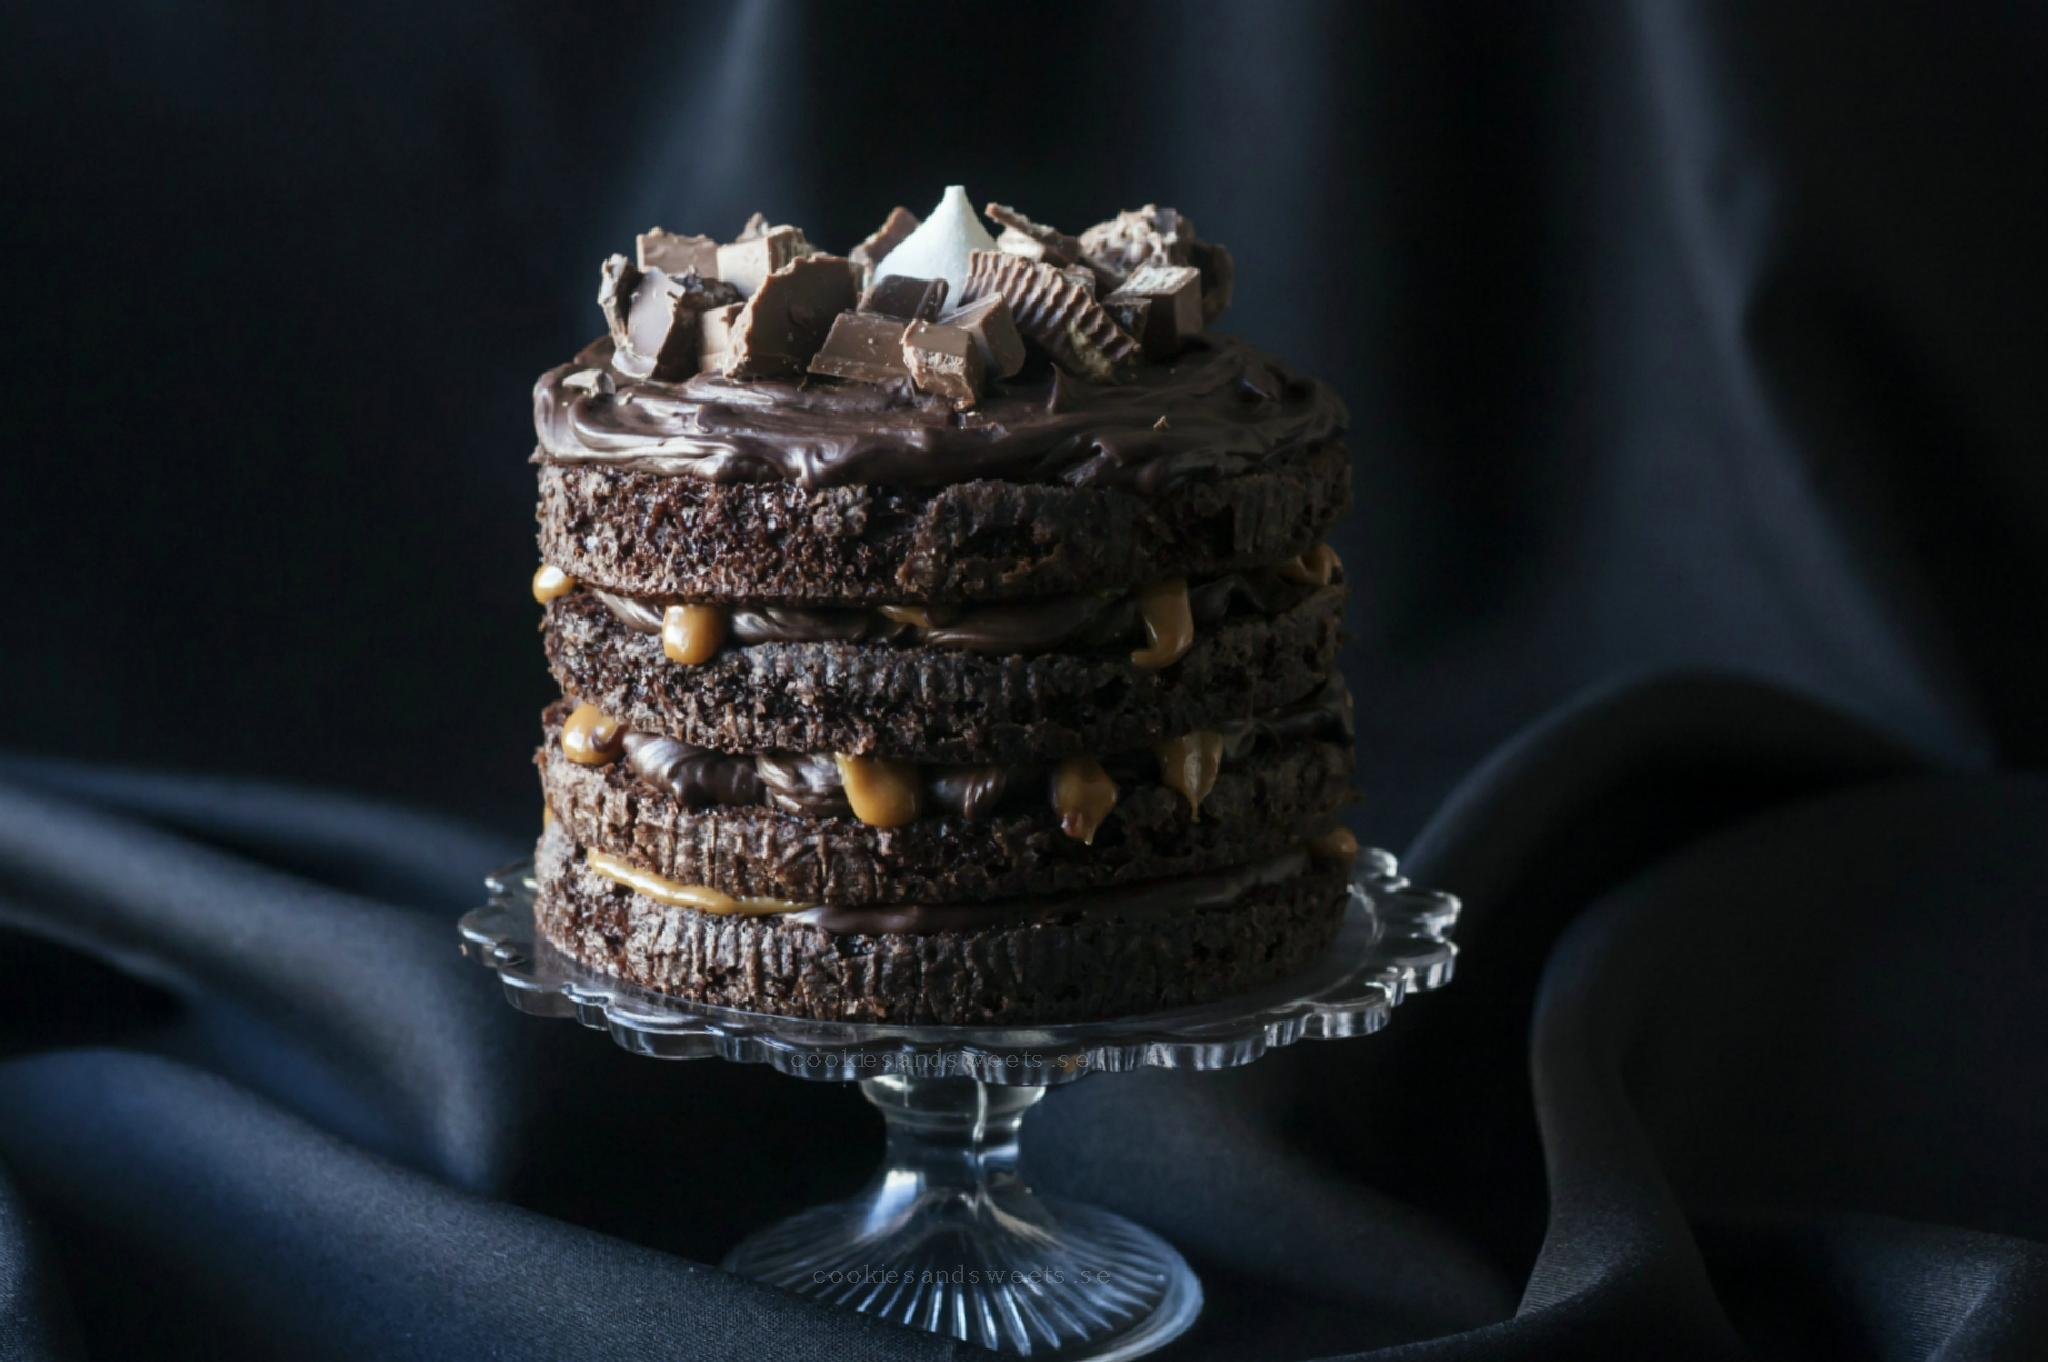 Chocolate cake from heaven by cookiesandsweets by simona